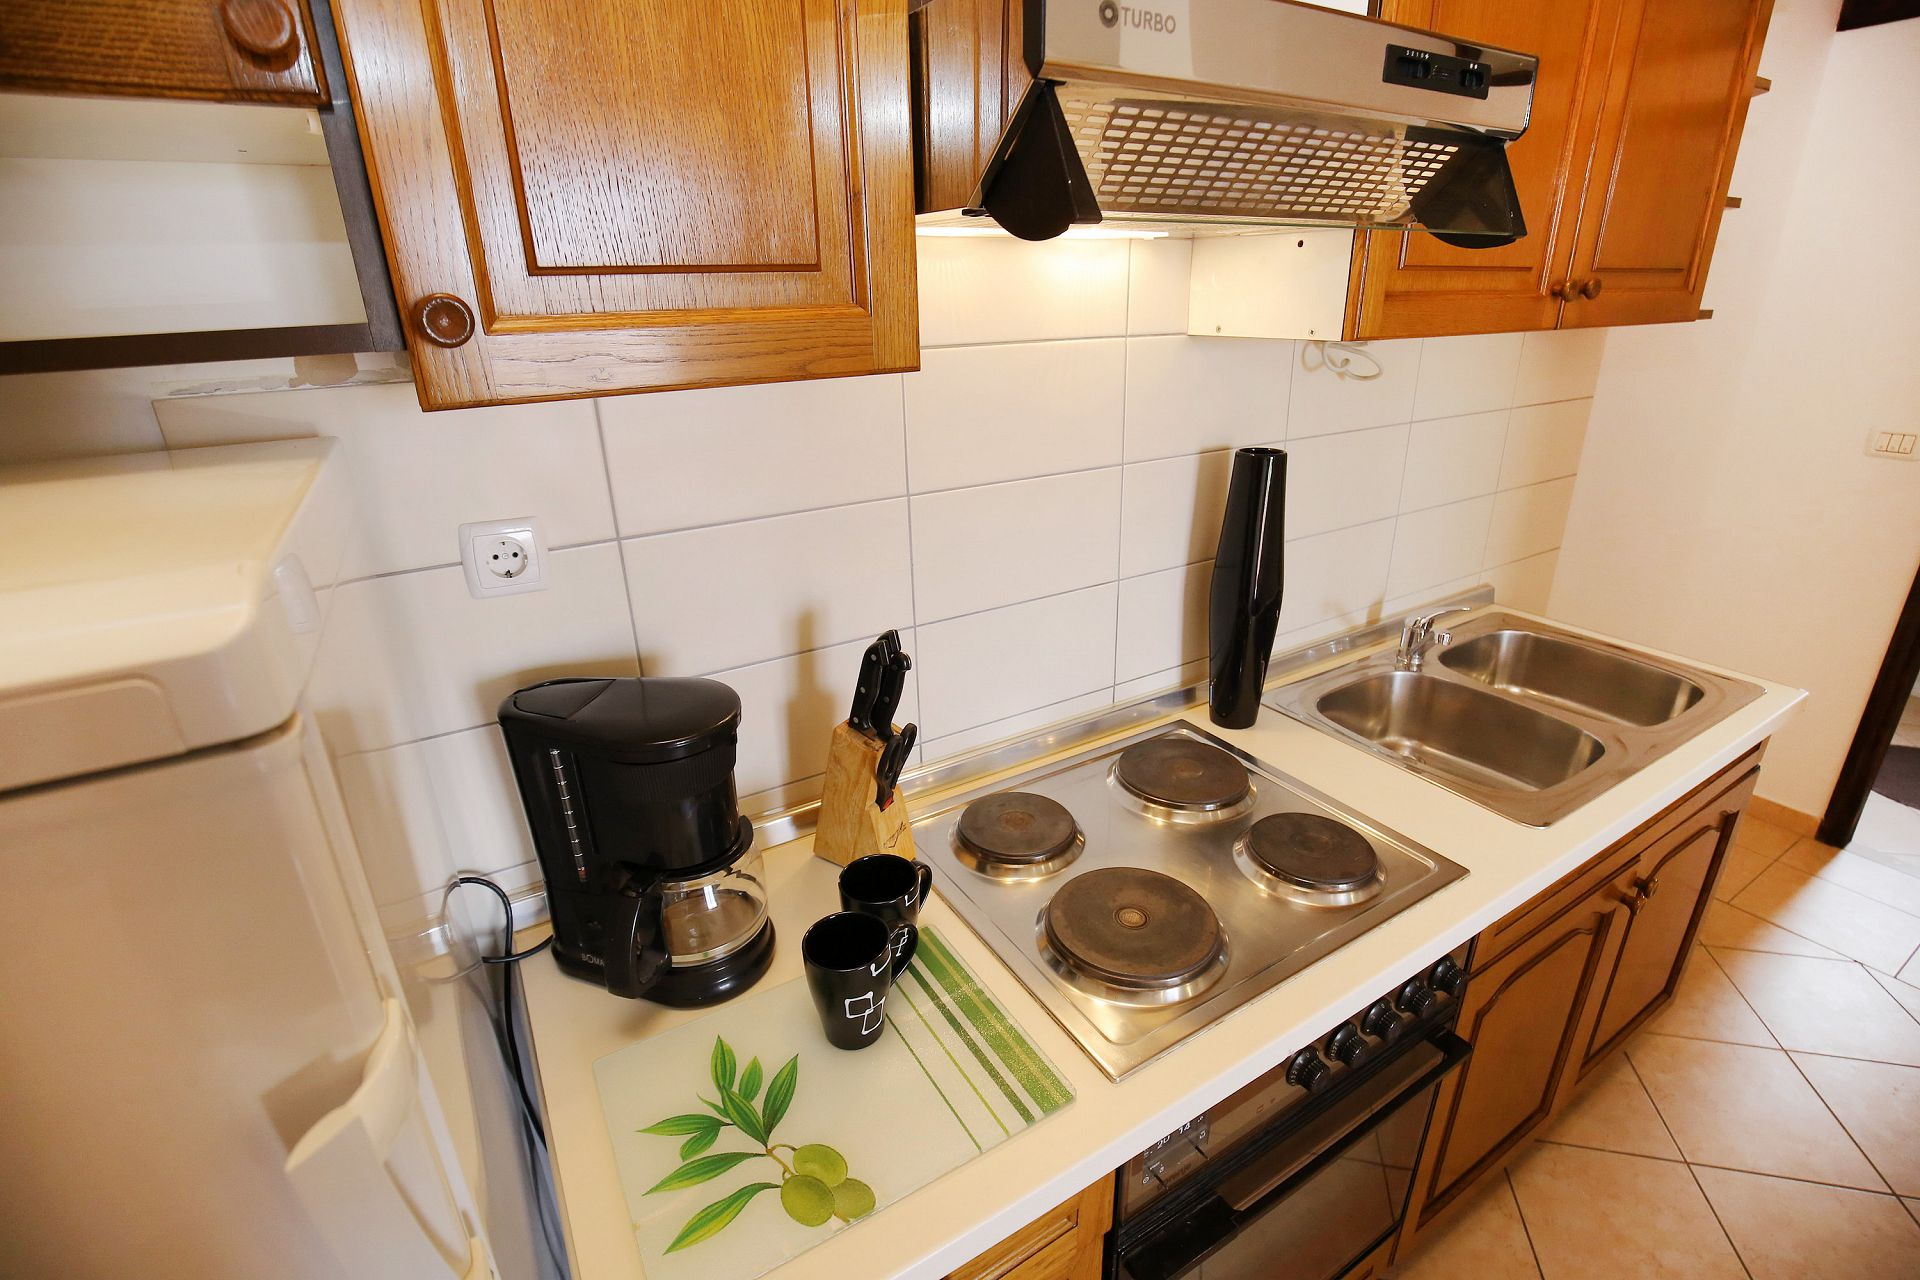 00418ZATZ - Zaton (Zadar) - Apartments Croatia - A3P(2+2): kitchen